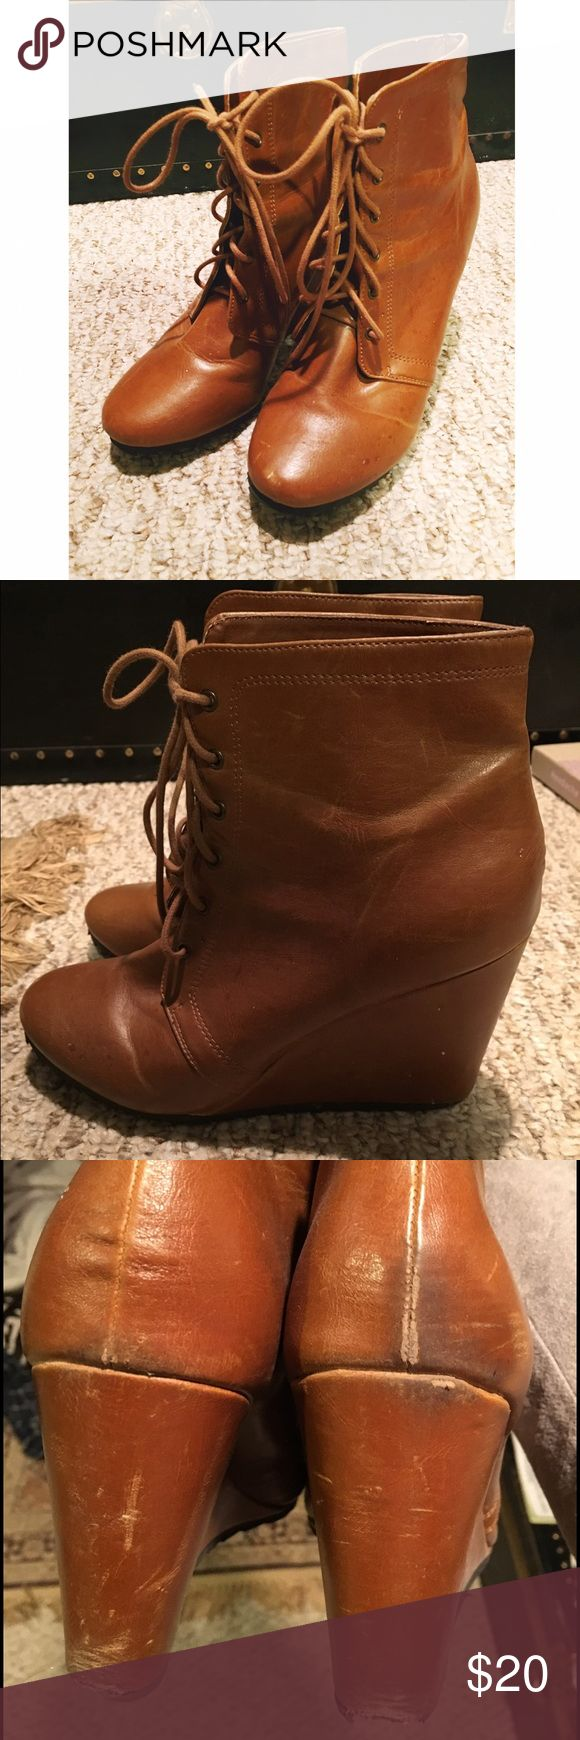 UO Tan Leather Boots Tall wedge boots from Urban Outfitters. Good condition, with some wear on the back (shown in third photo, reflected in price). They have great traction which makes them easy to walk in. True to size. Ask any questions and make an offer! Urban Outfitters Shoes Ankle Boots & Booties